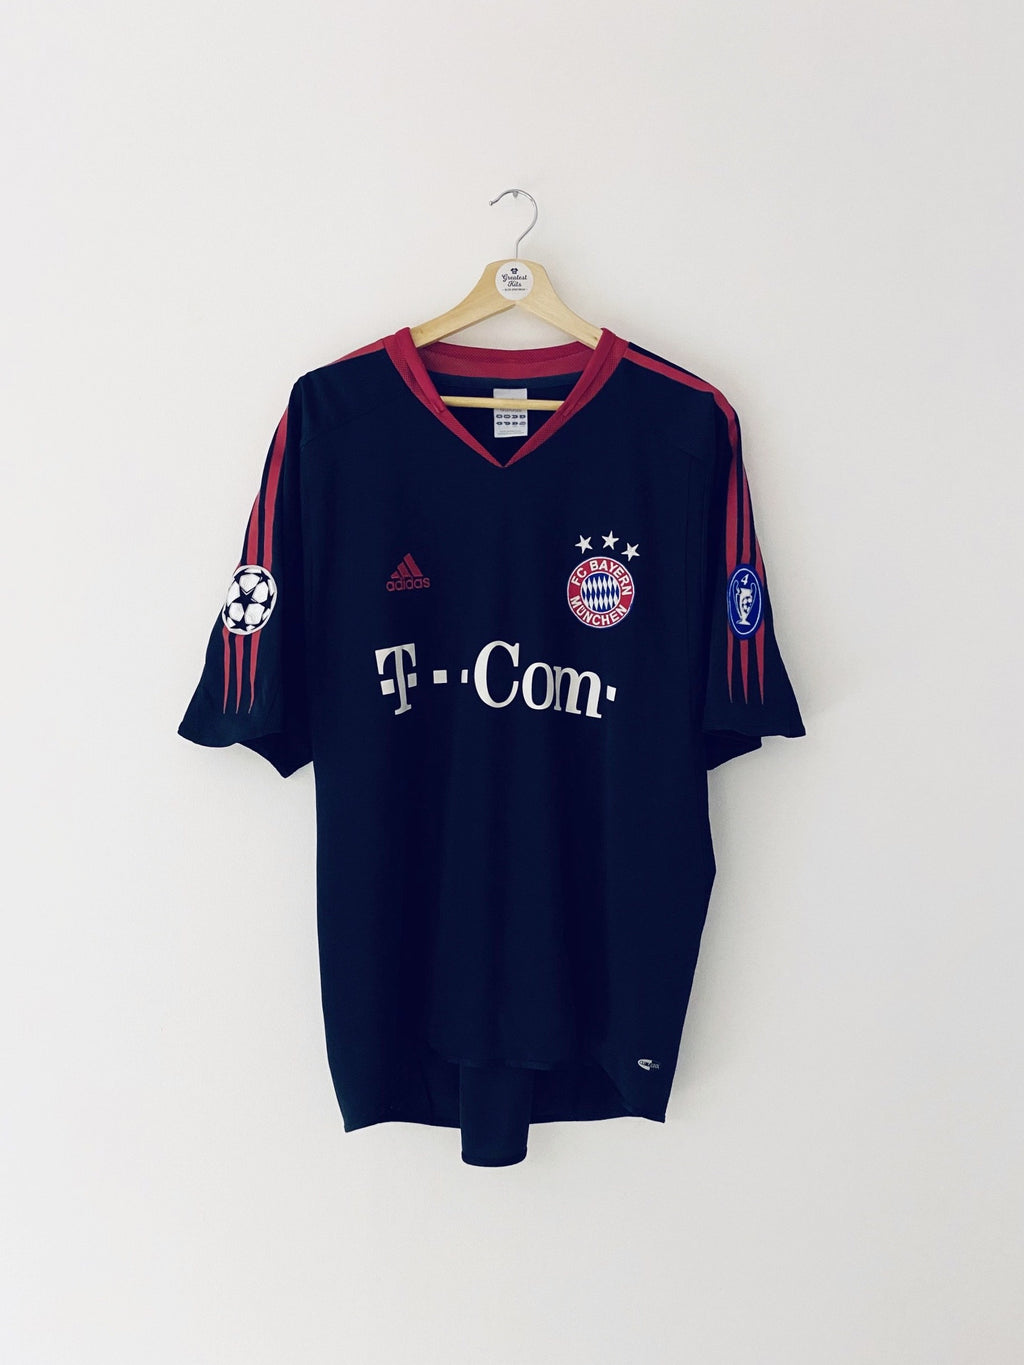 2004/05 Bayern Munich CL Shirt (L) 8.5/10